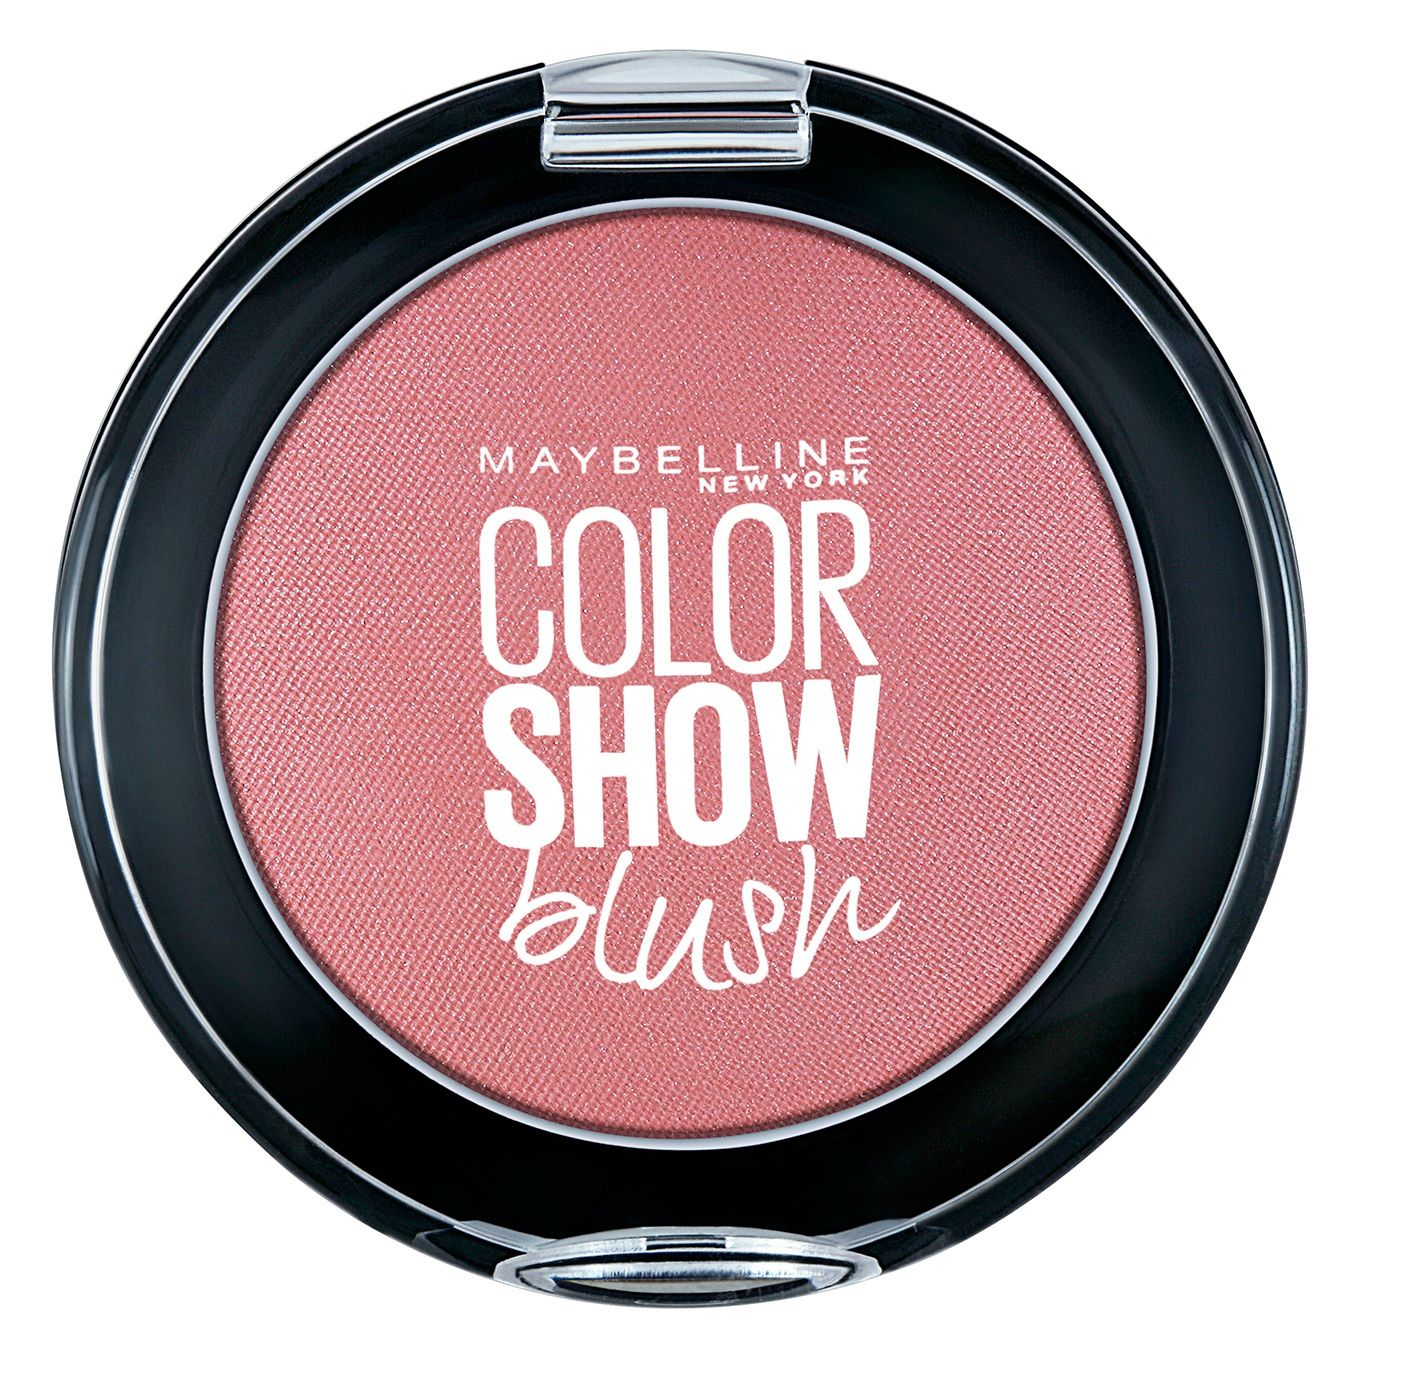 Maybelline New York Face Blush - Buy Maybelline New York Color Show Blush Online in India